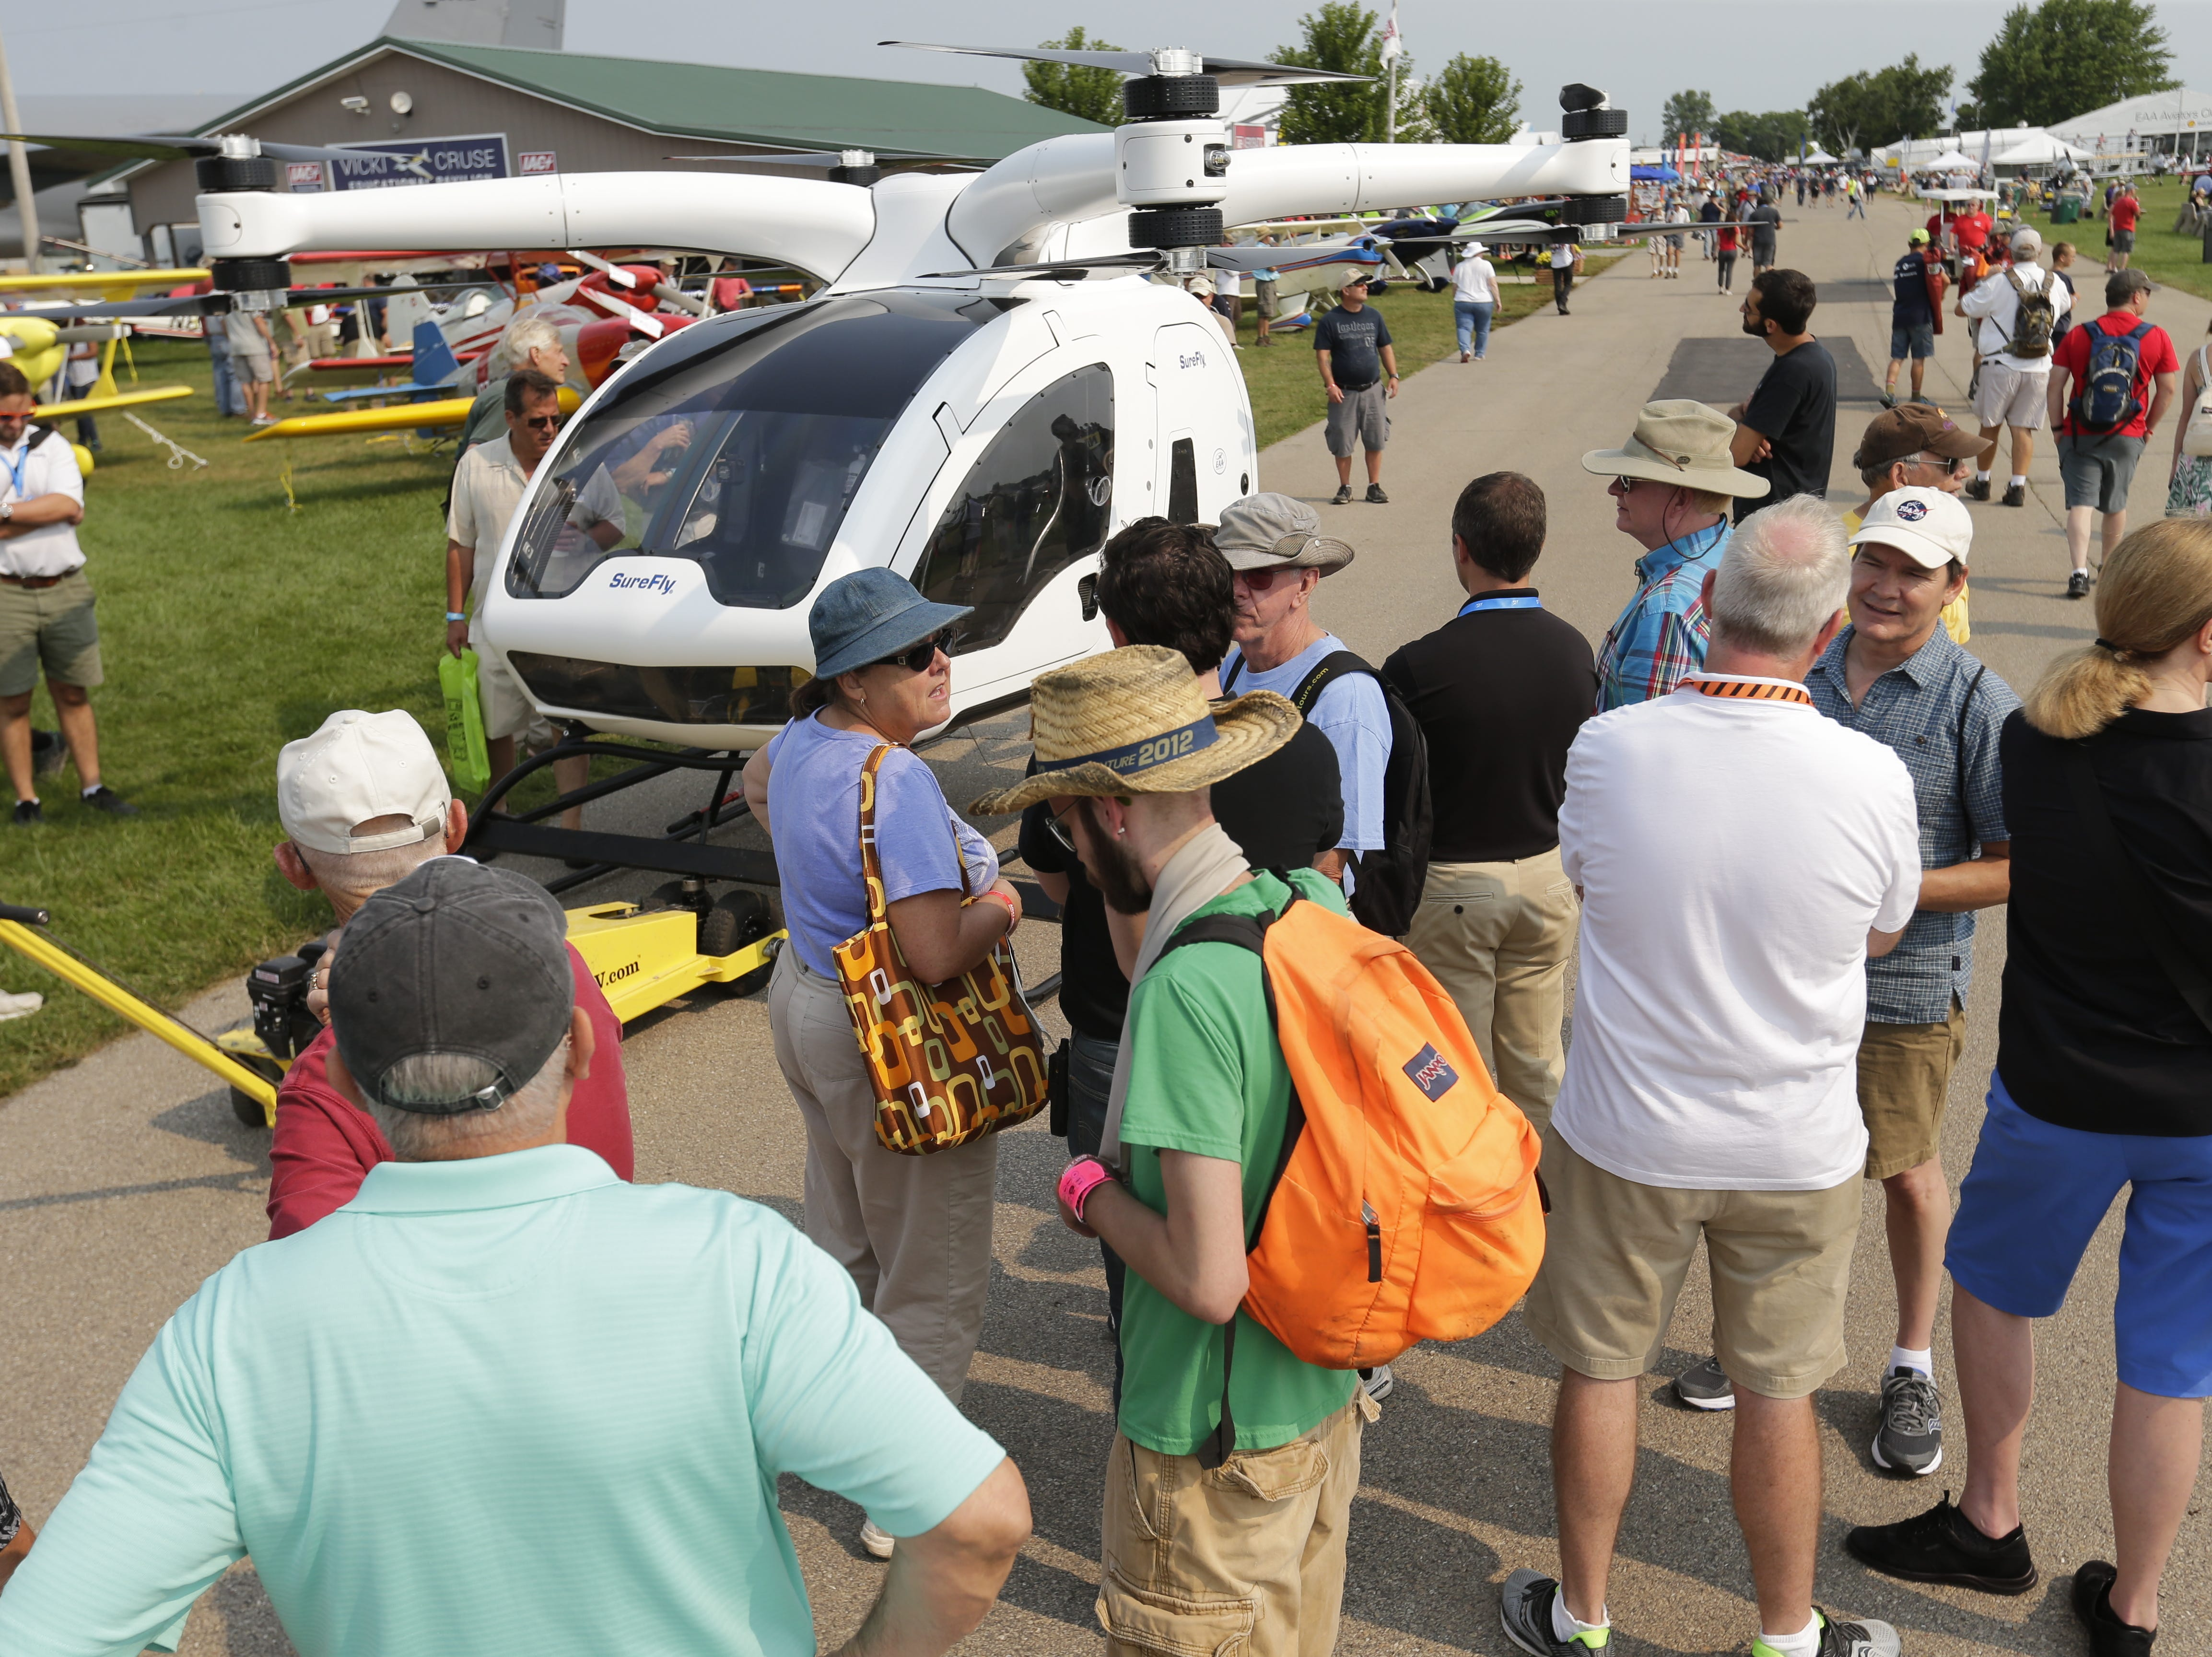 The SureFly manned drone vehicle drew attention with spectators at AirVenture.  The first day of AirVenture 2018 opened on July 23, 2018.  Thousands of people will pass through the gates of AirVenture. Joe Sienkiewicz/USA Today NETWORK-Wisconsin